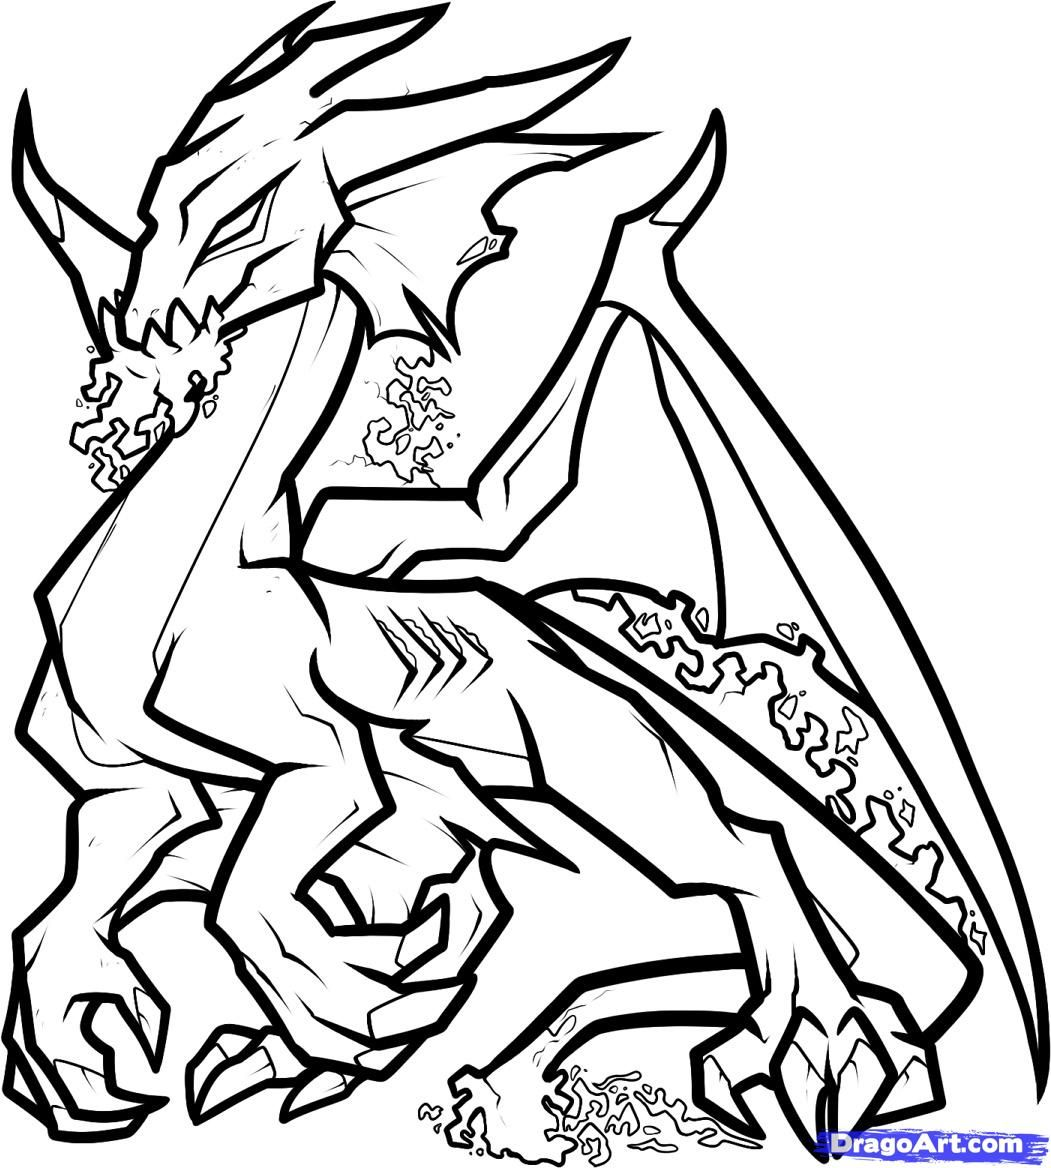 Coloring pages of dragons - Draw The Rest Of The Dragon S Back And Tail Like So And Notice How The